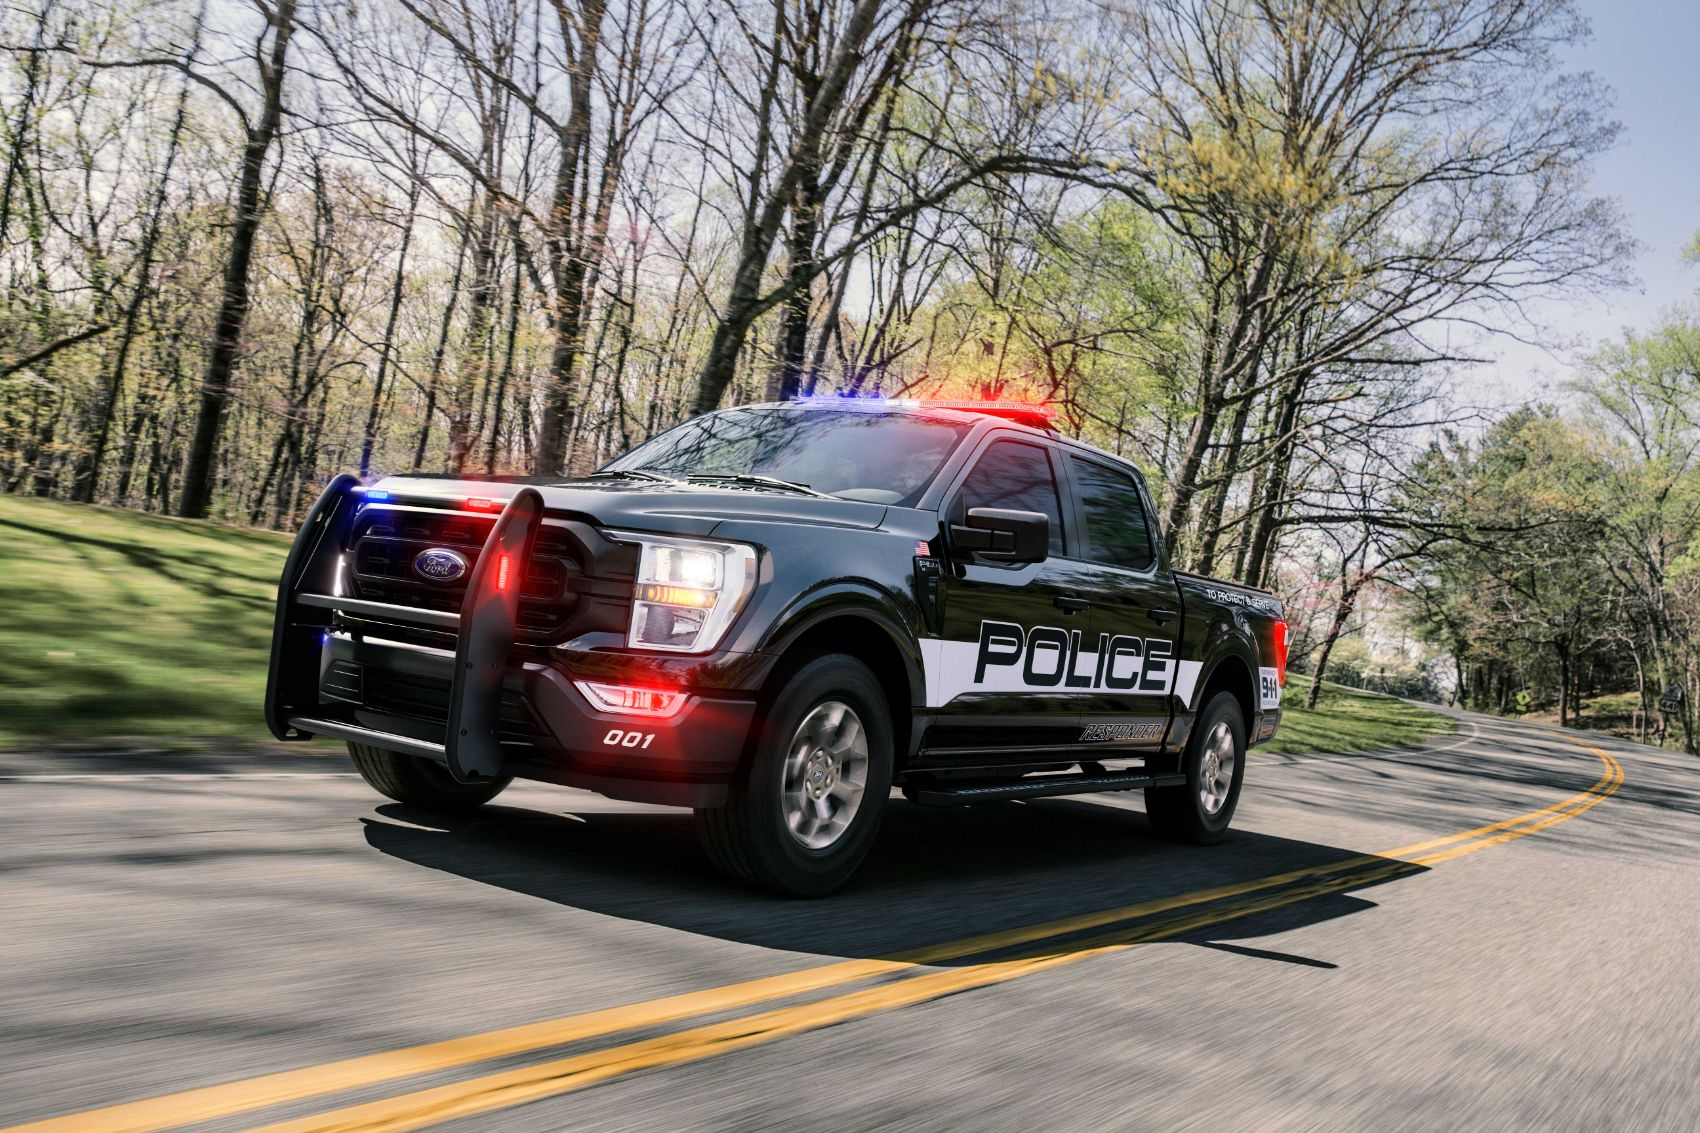 2021 Ford F-150 Police Responder: Increased Capability & New Tech for Law Enforcement